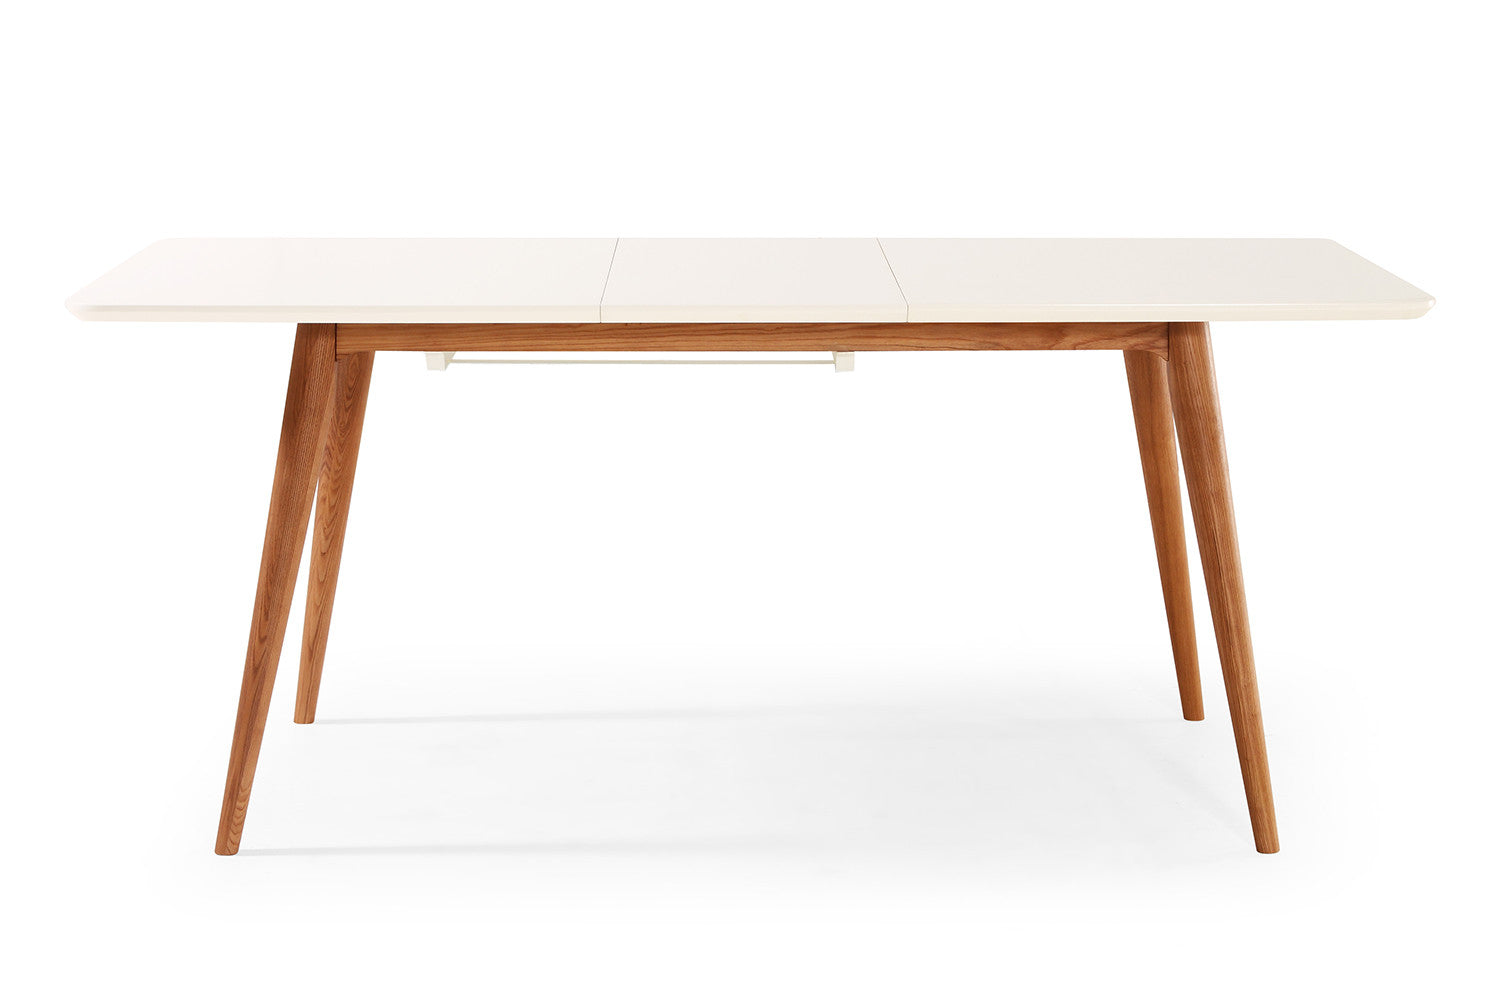 Table de salle a manger design avec rallonge for Table a manger rallonge papillon